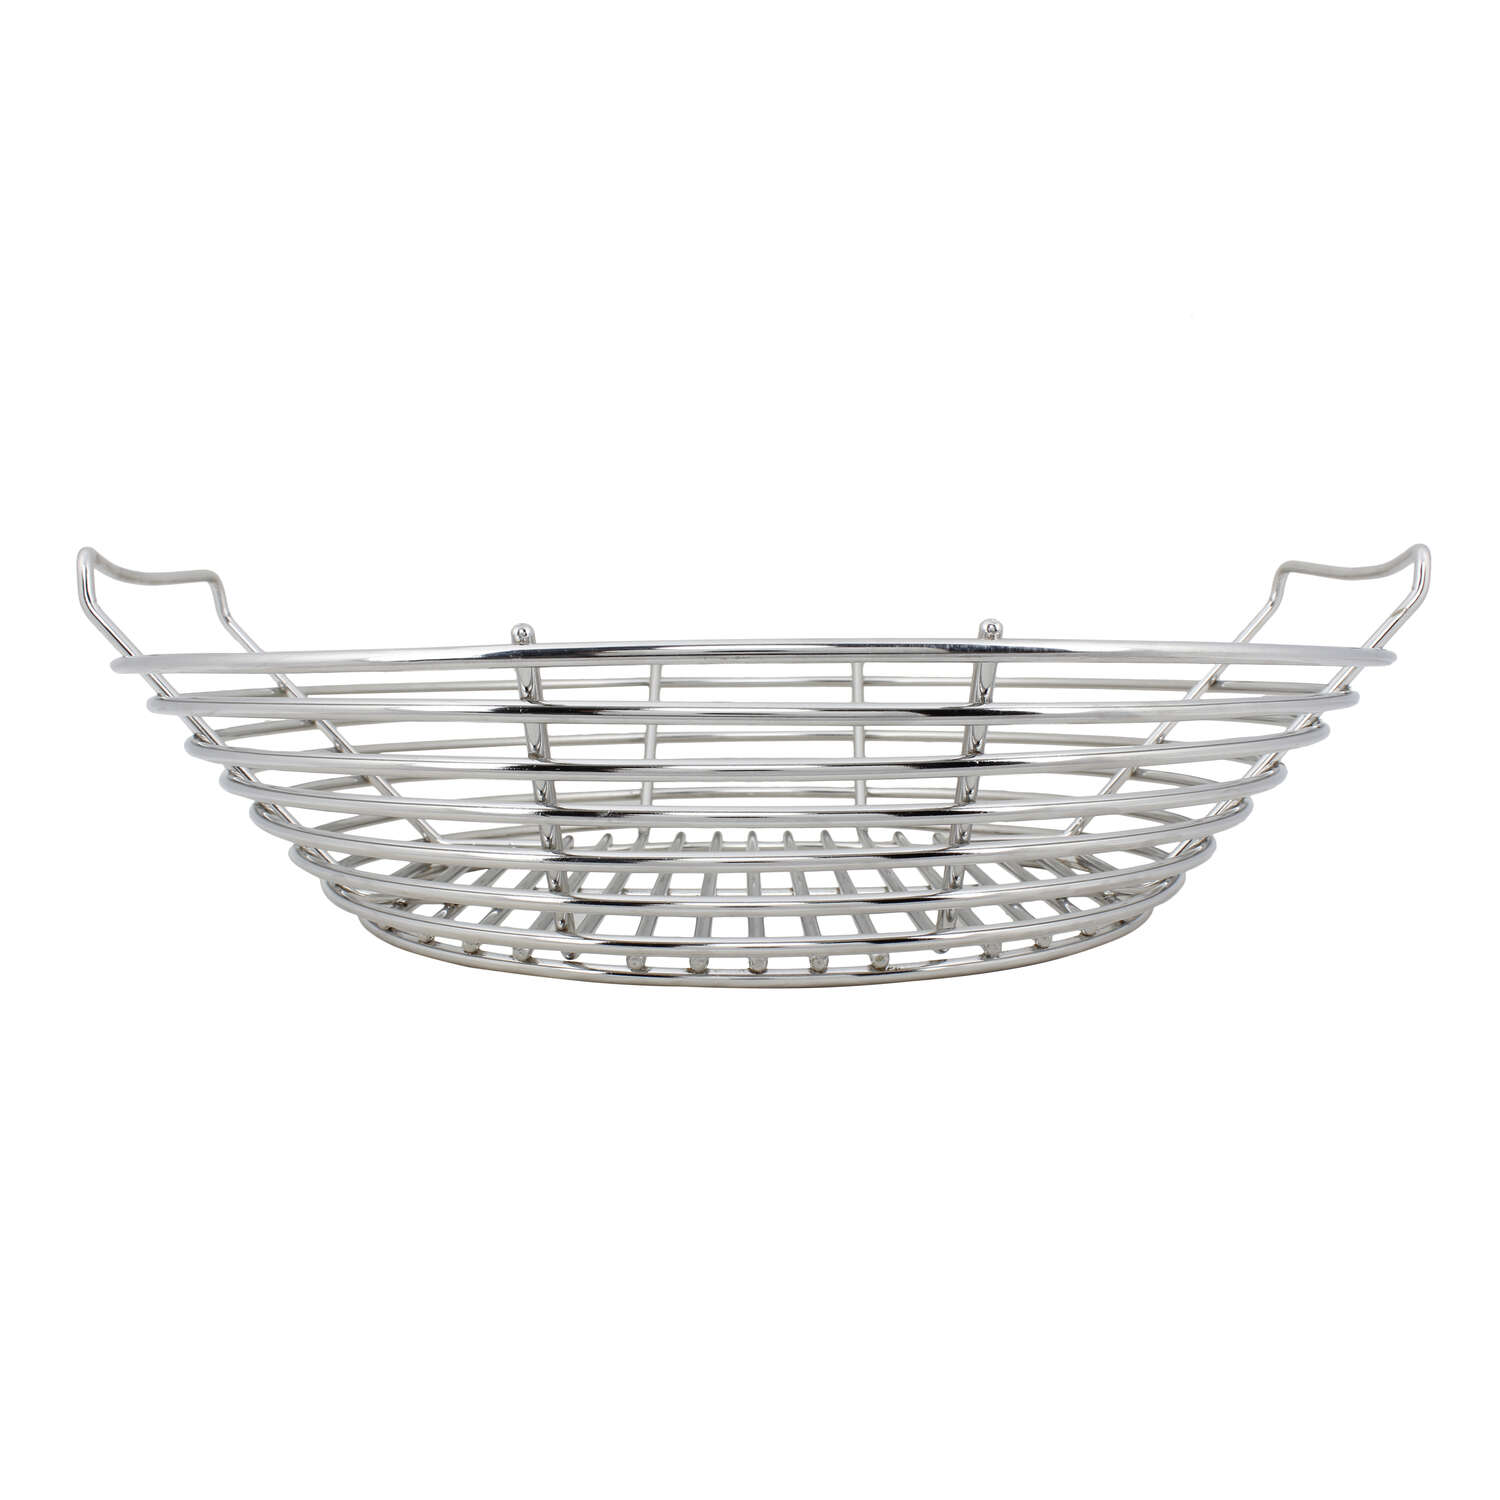 Kick Ash Basket  Stainless Steel  Charcoal Grate  5.6 in. H x 19.1 in. W x 19.1 in. L